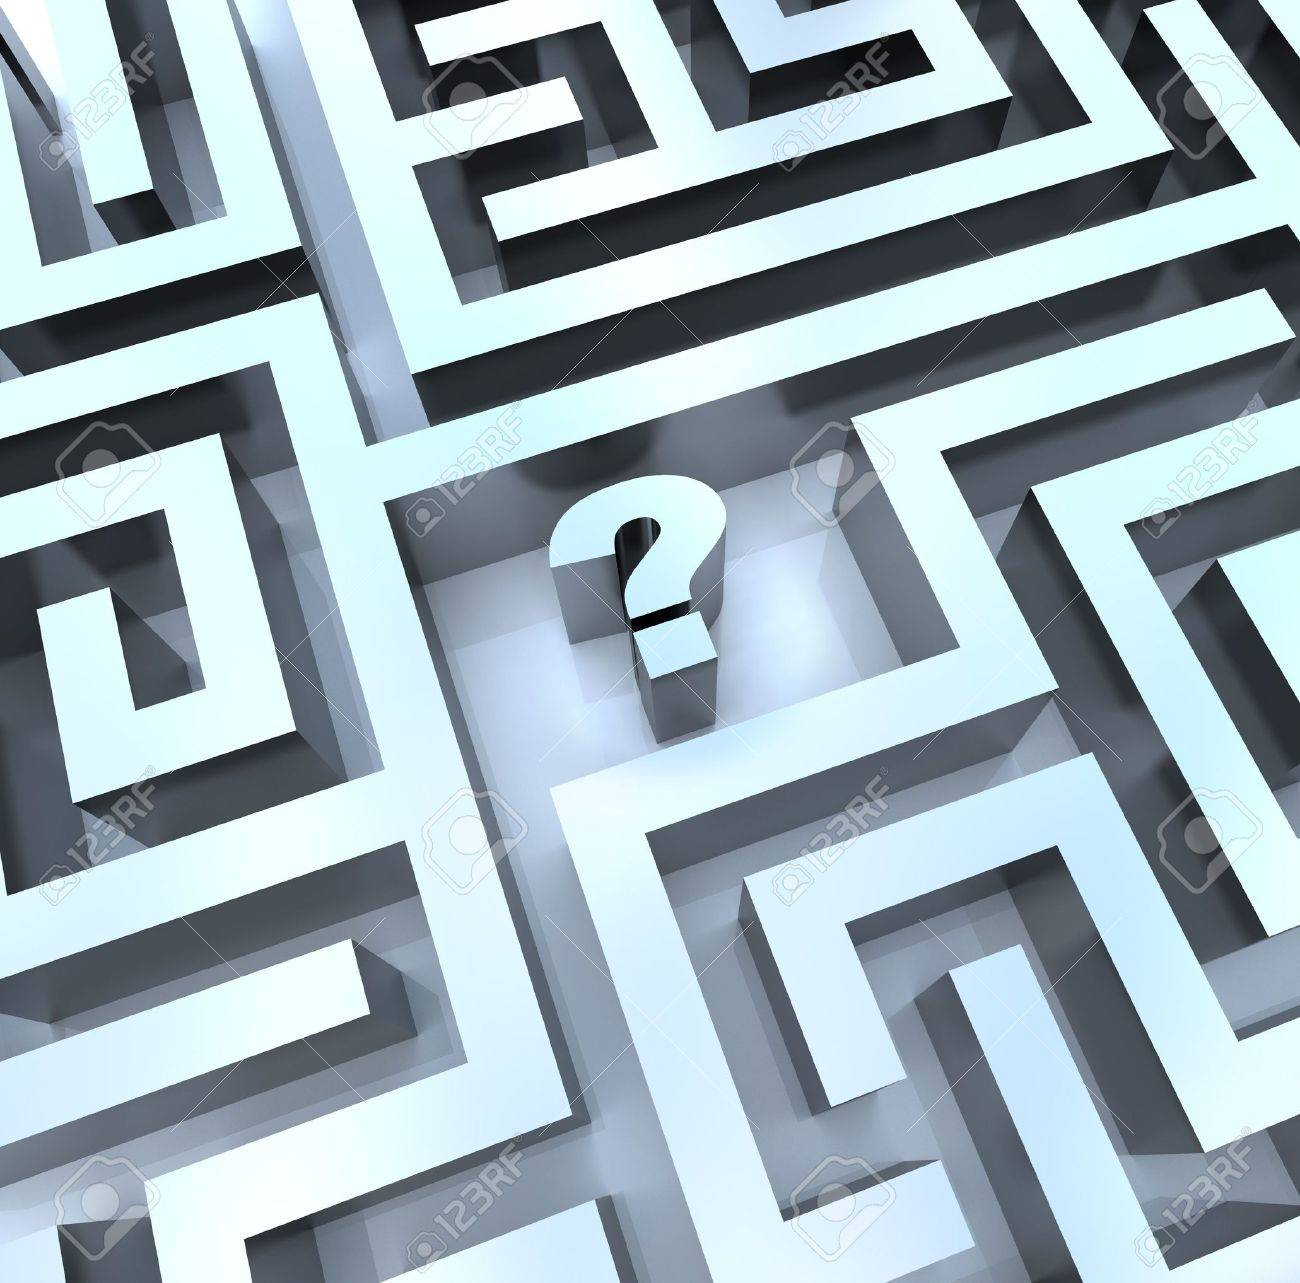 A question mark in the middle of a maze, symbolizing the need to search for an answer Stock Photo - 7383665